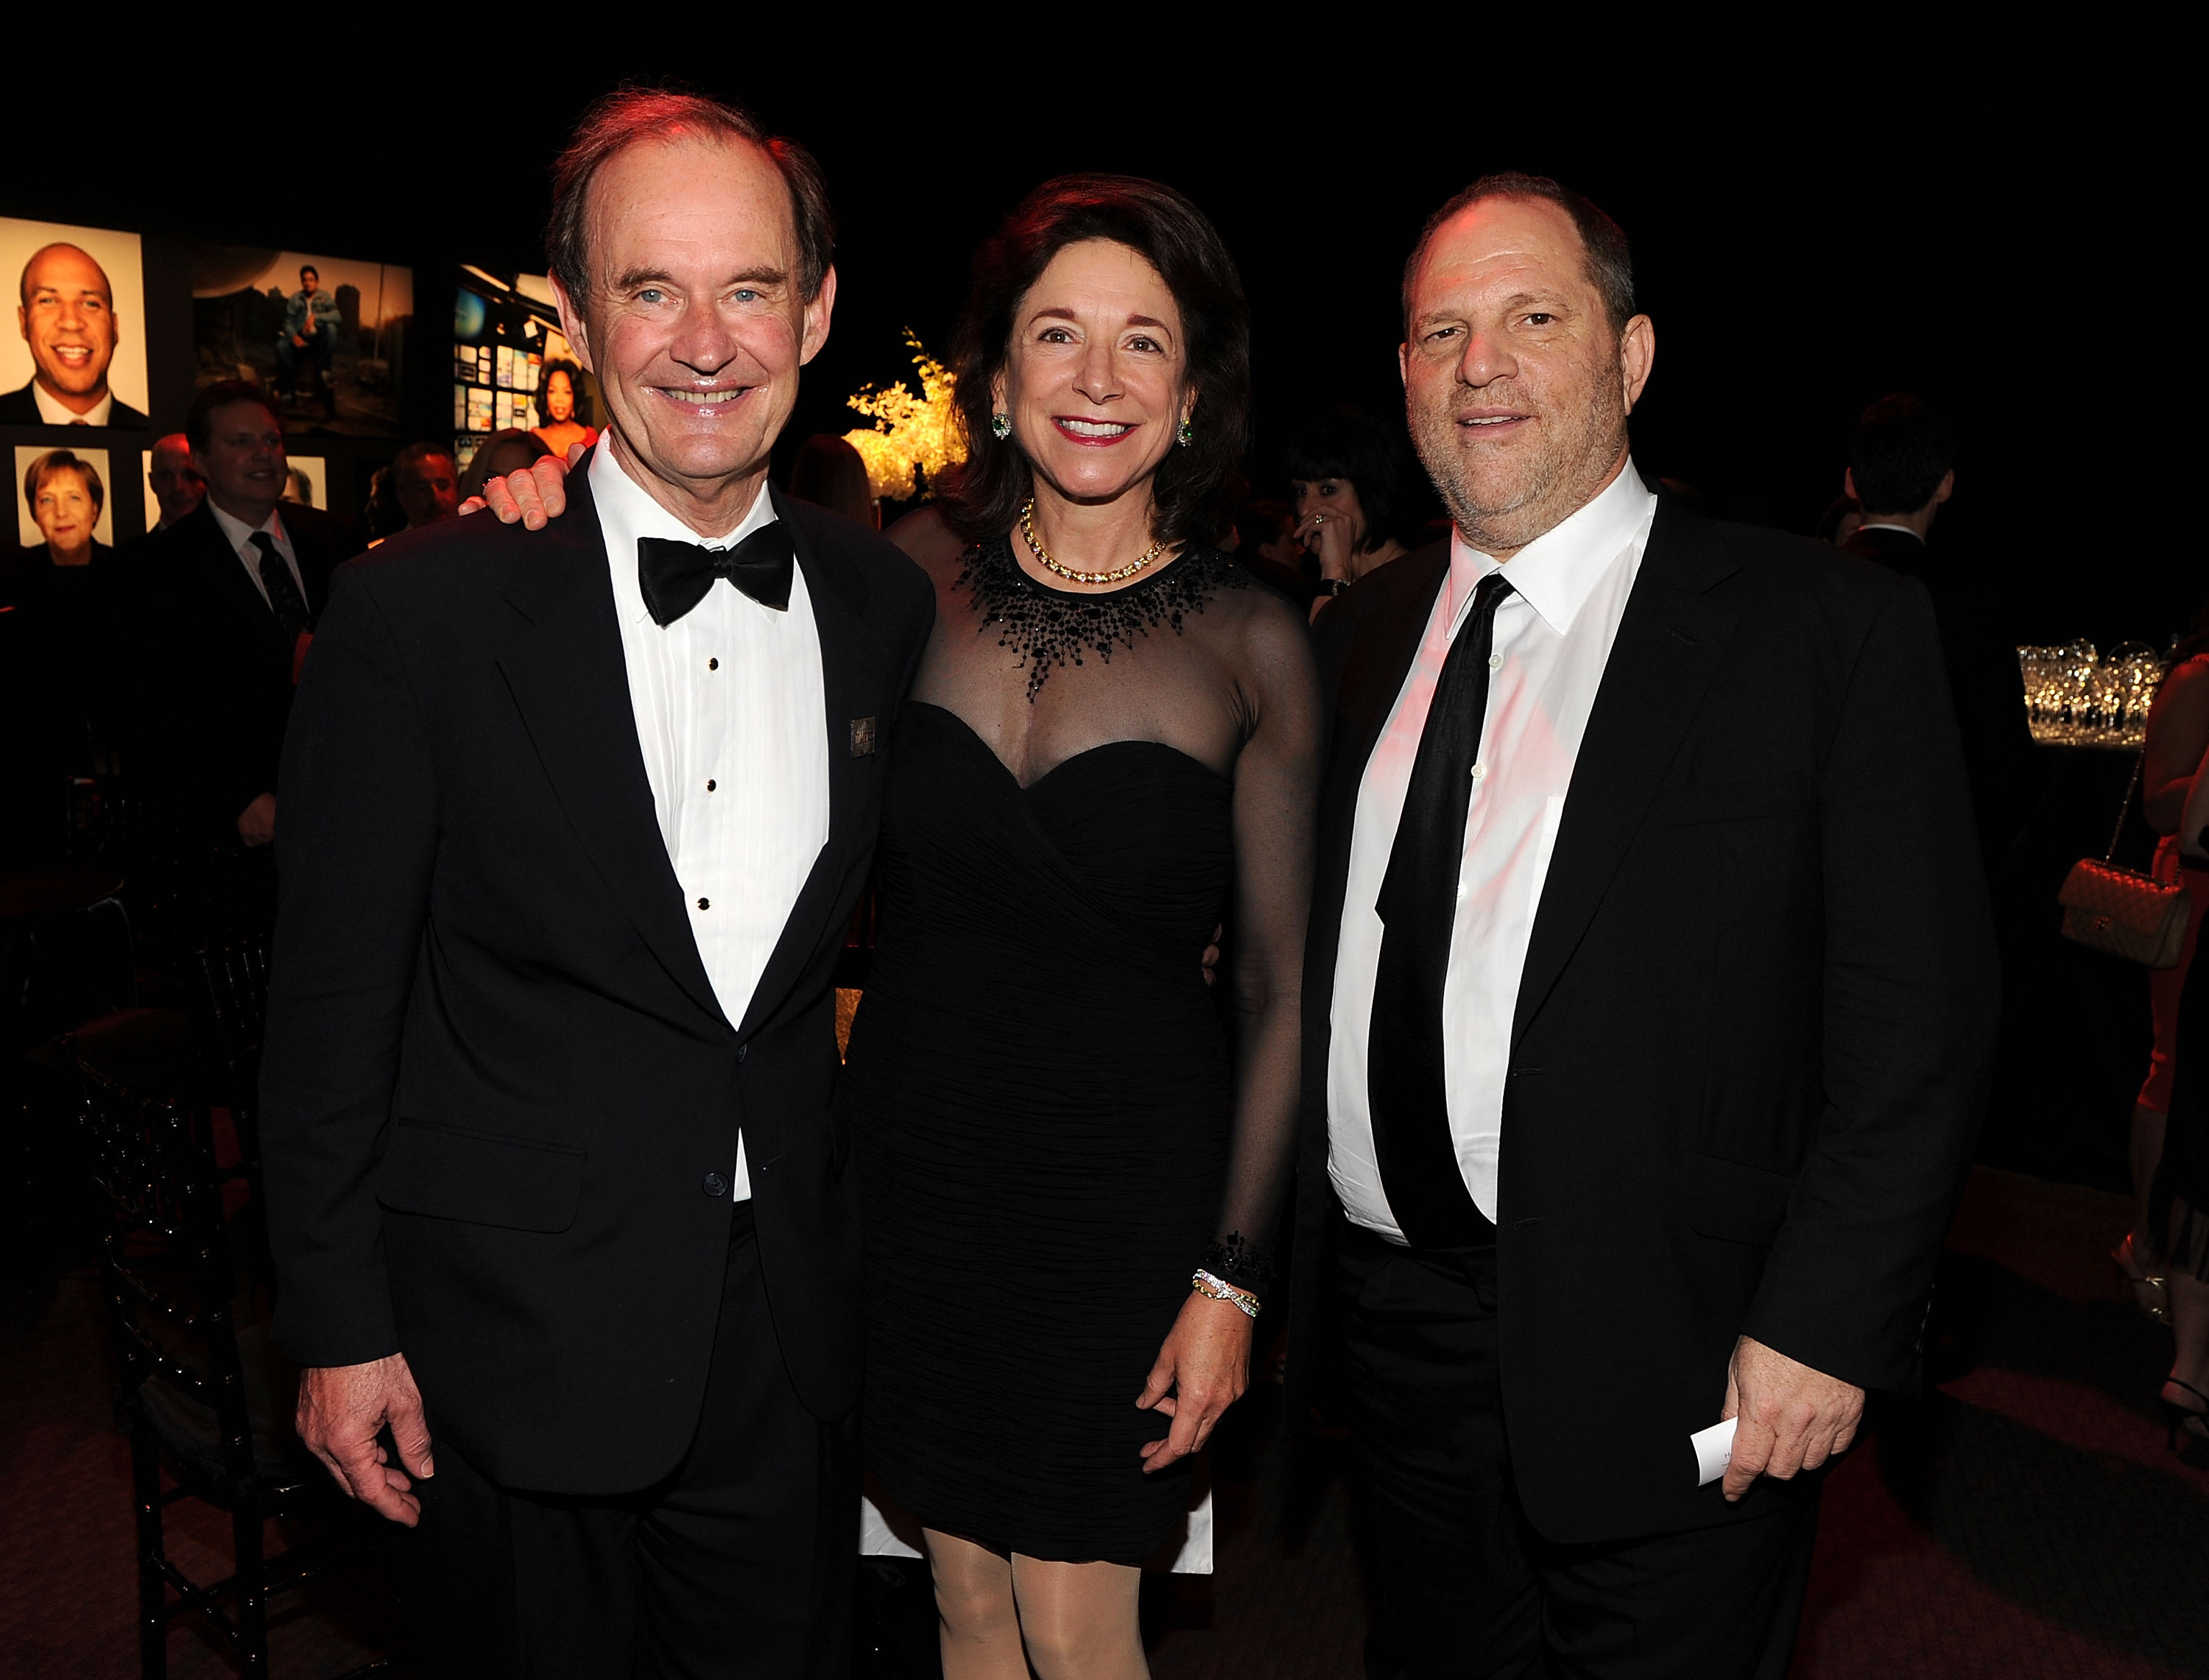 NEW YORK, NY - APRIL 26: David Boies and Mary Boies and Harvey Weinstein attends the TIME 100 Gala, TIME'S 100 Most Influential People In The World at Frederick P. Rose Hall, Jazz at Lincoln Center on April 26, 2011 in New York City. (Photo by Larry Busacca/Getty Images for Time Warner)